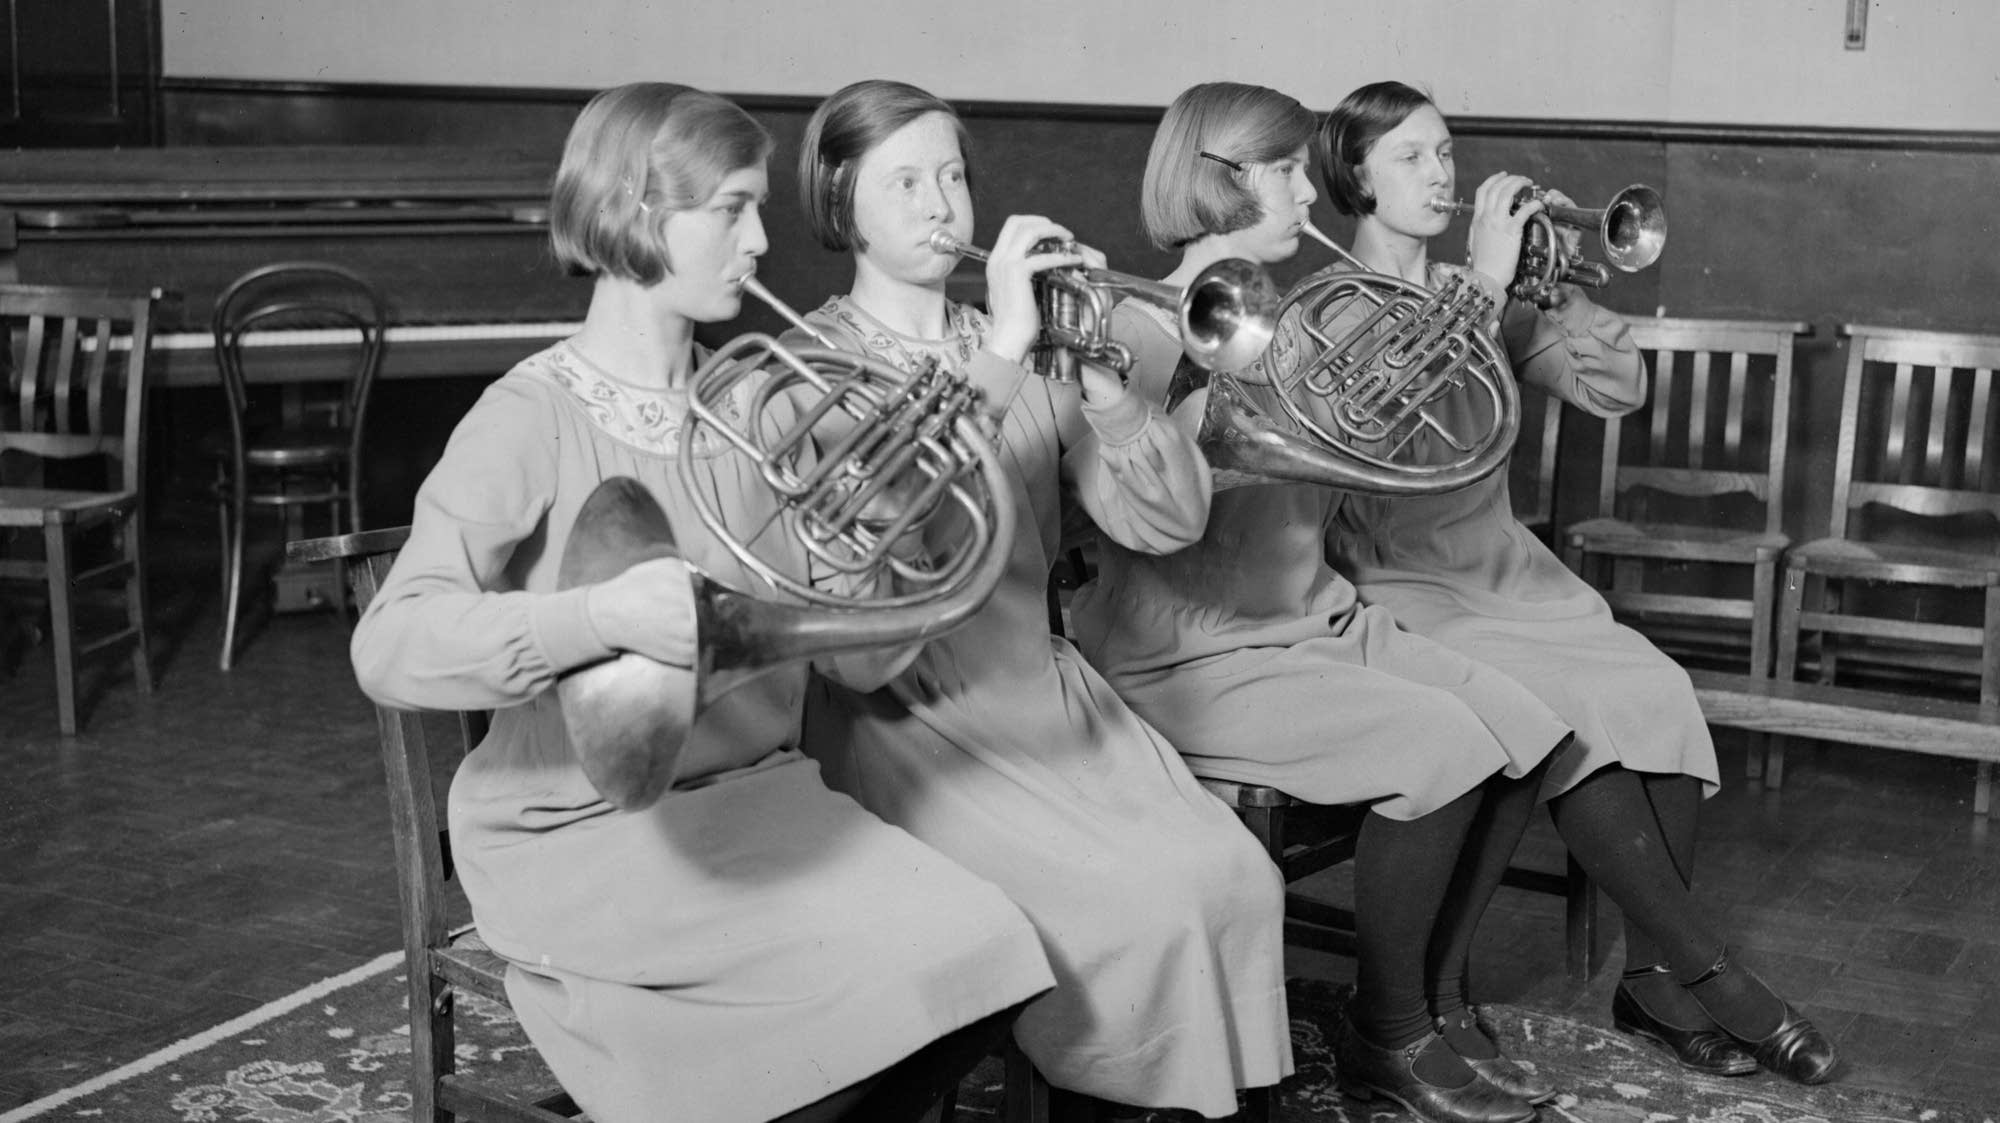 Horn and trumpet players perform at England's Queenswood College in 1932.